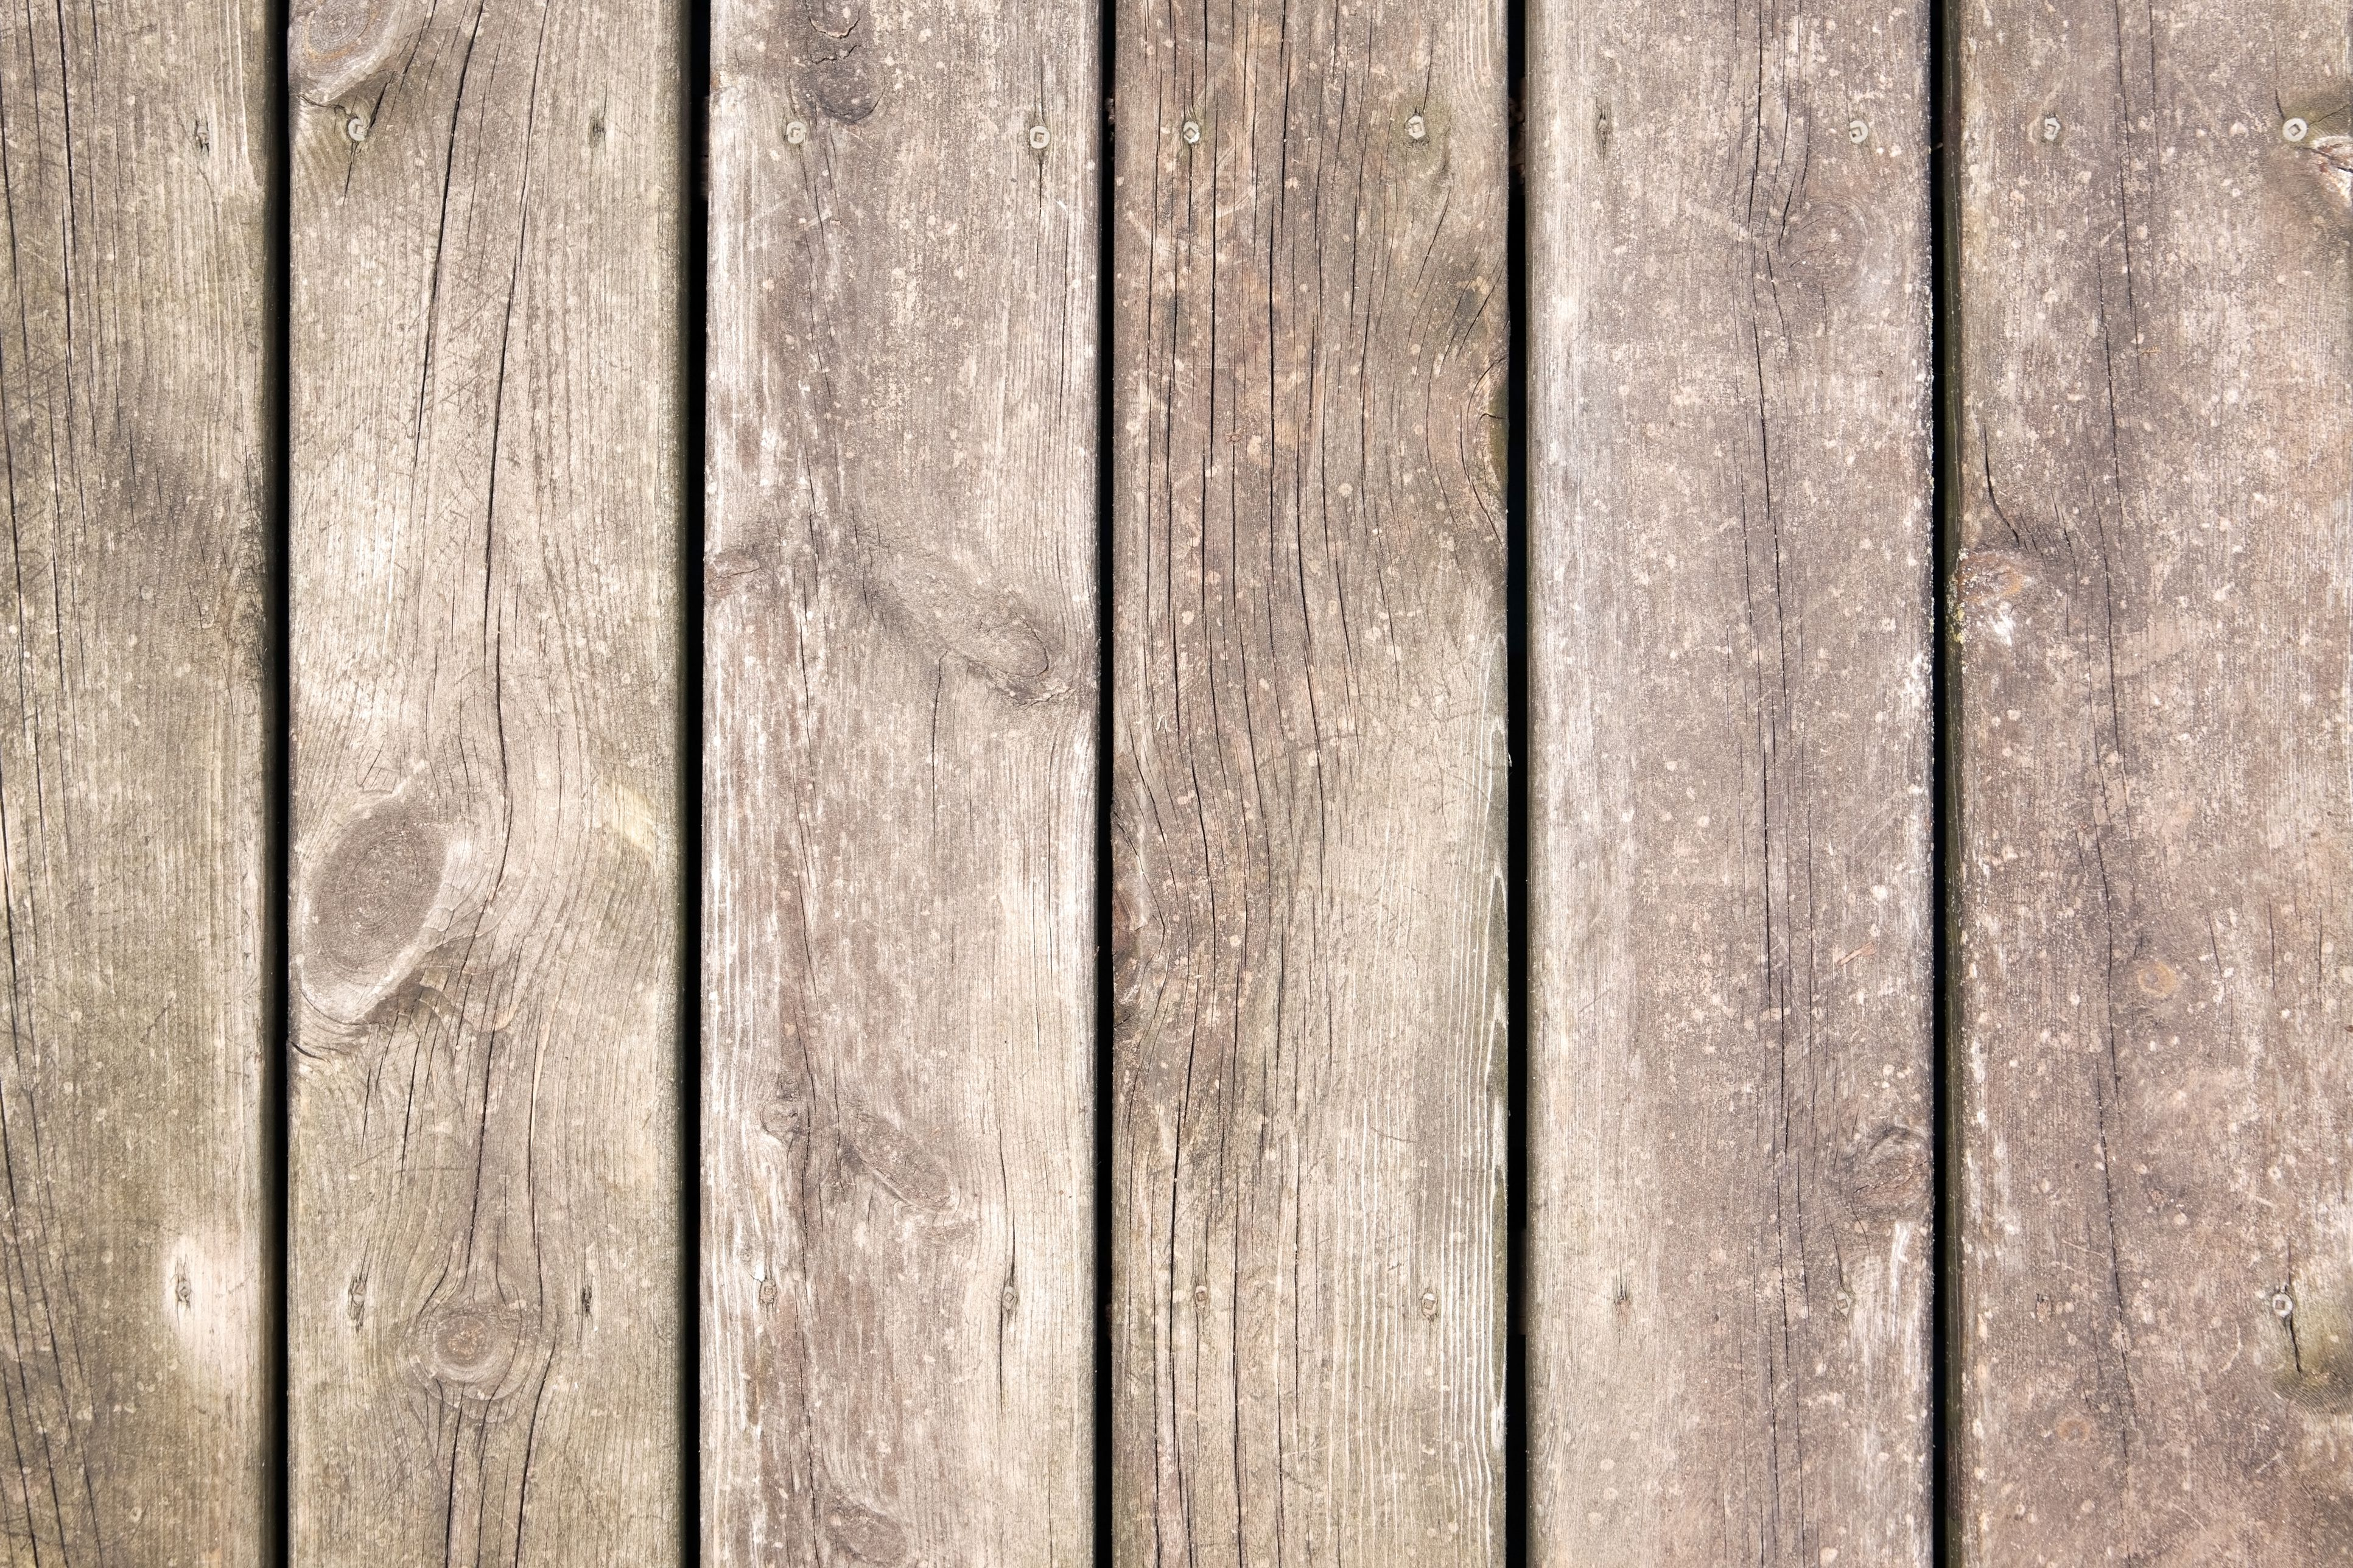 Refinishing a Wood Deck: An Overview